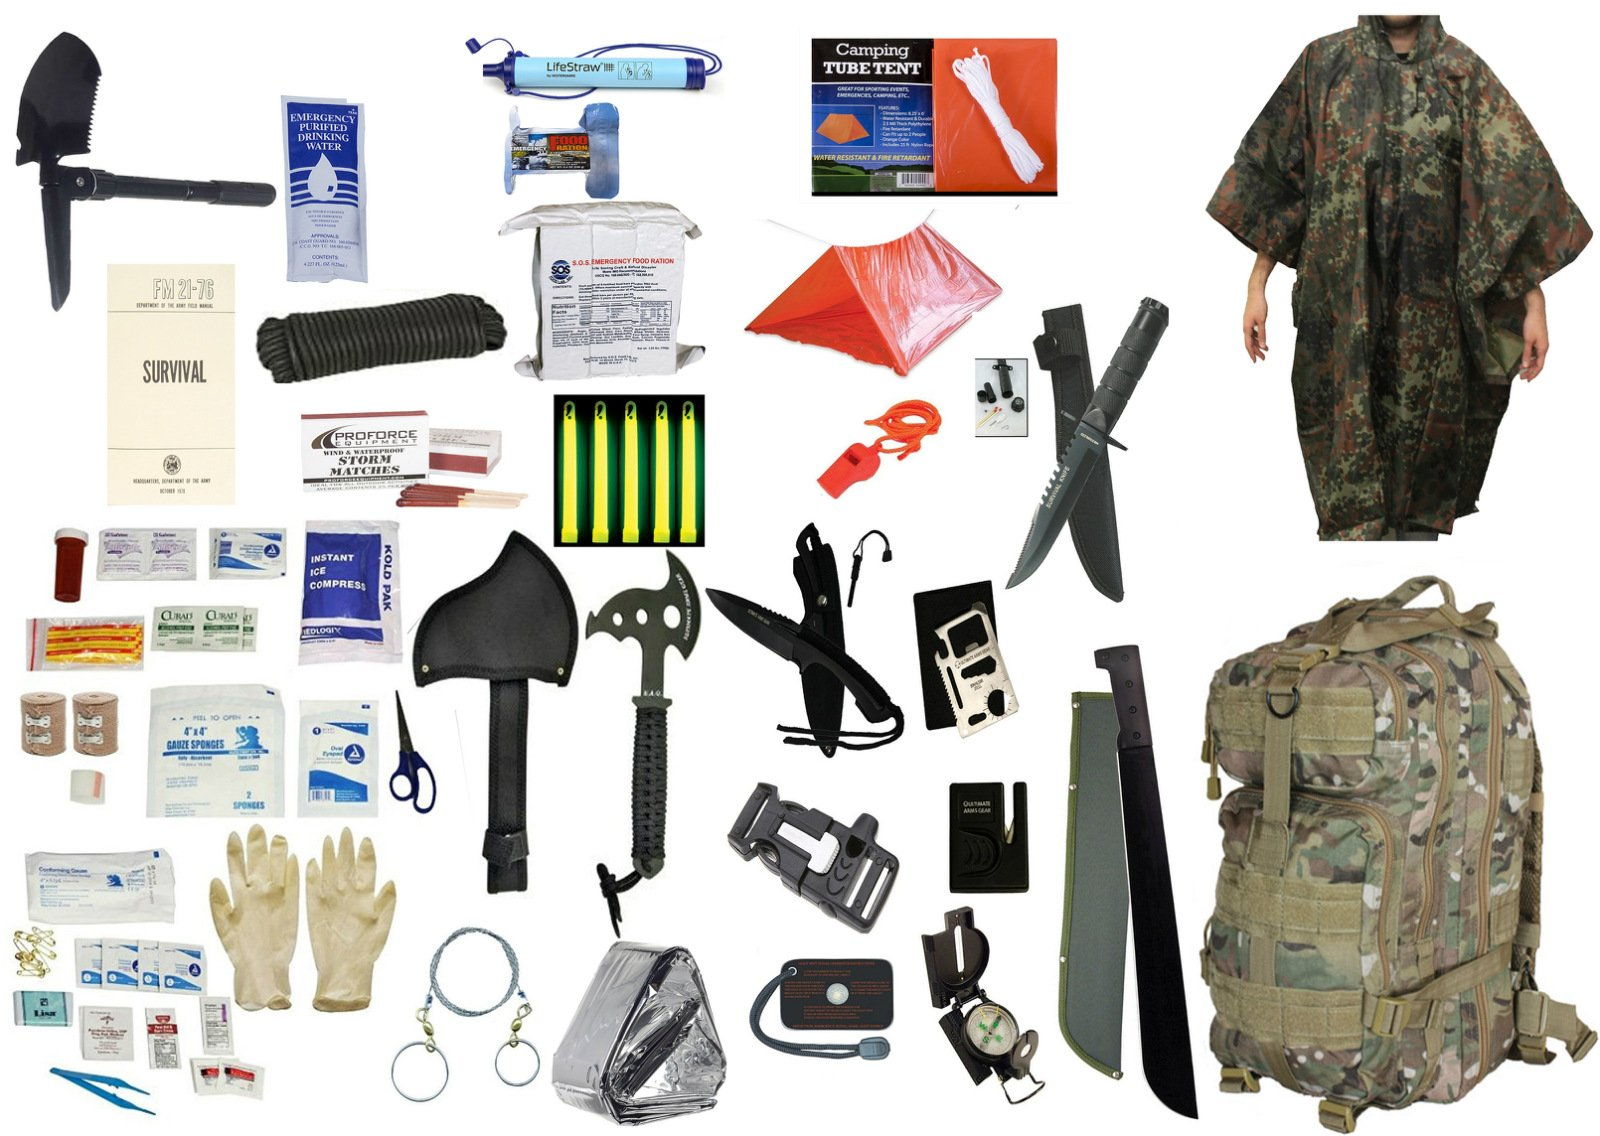 1 Person Supply 5 Day Emergency Bug Out S.O.S. Food Rations, Drinking Water, LifeStraw Personal Filter, First Aid Kit, Tent, Blanket, TACCAM Backpack, Flectarn Poncho + Essential 21 Piece Survival Set